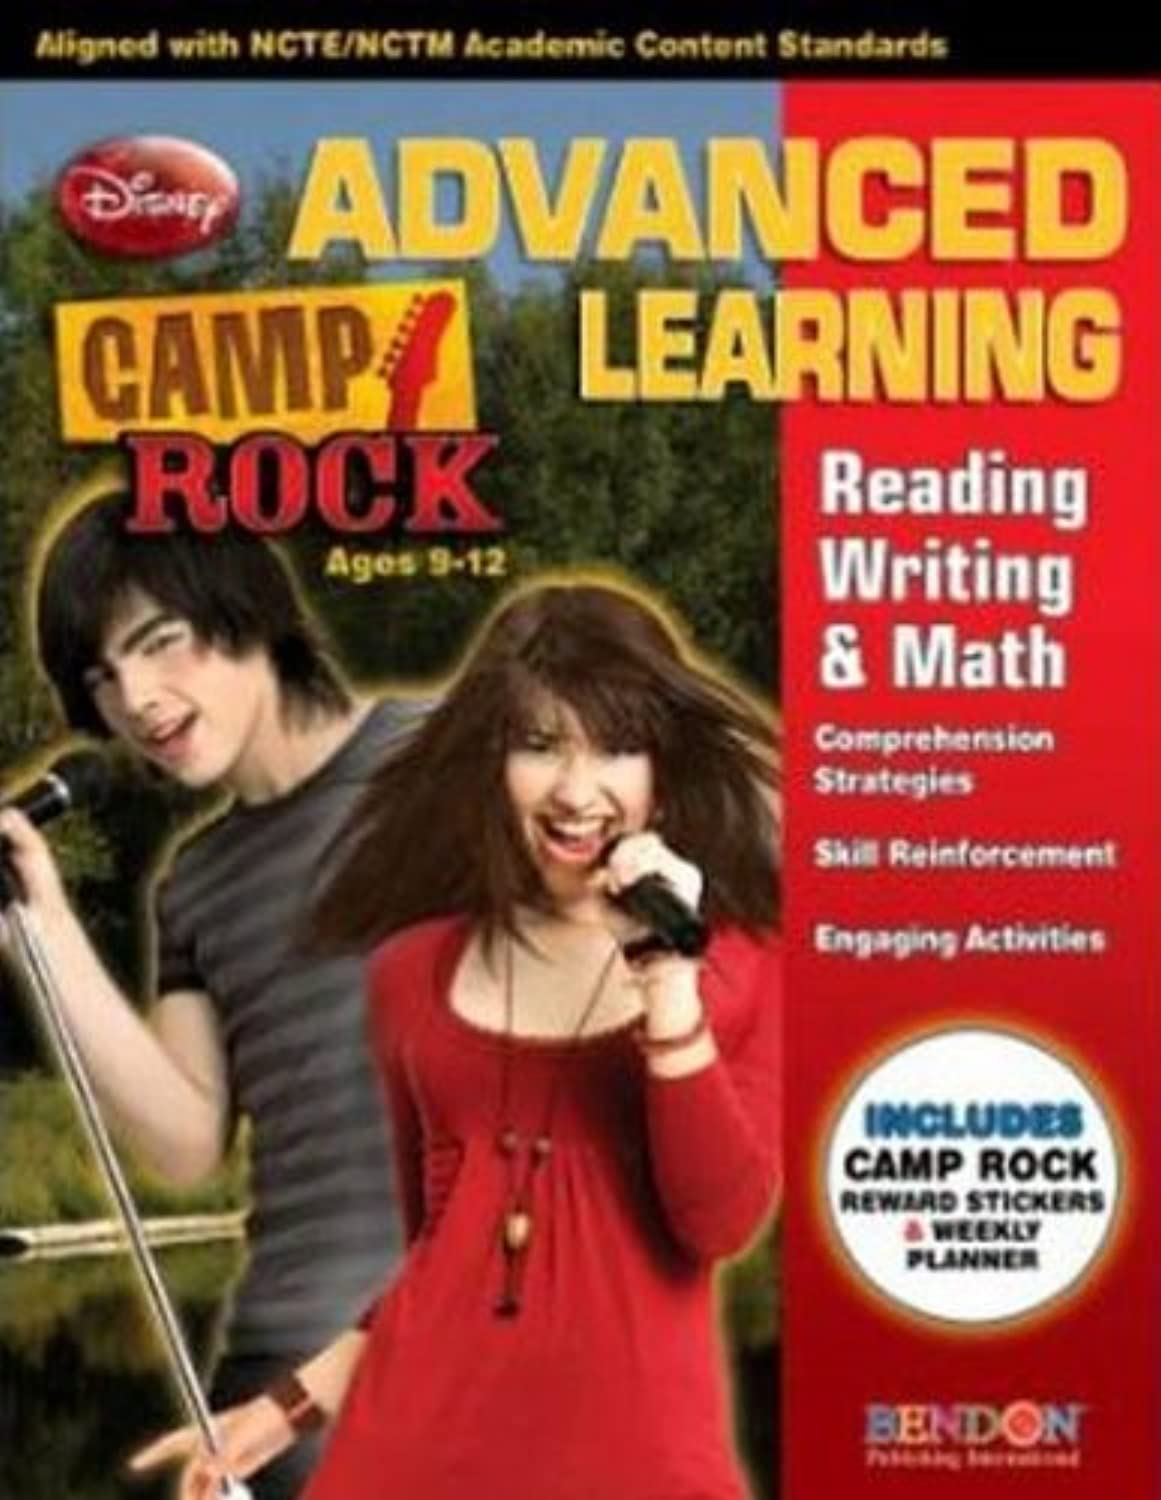 Bulk Buys Camp Rock Advanced Learning Reading, Writing & Mat - Case of 96 by DDI